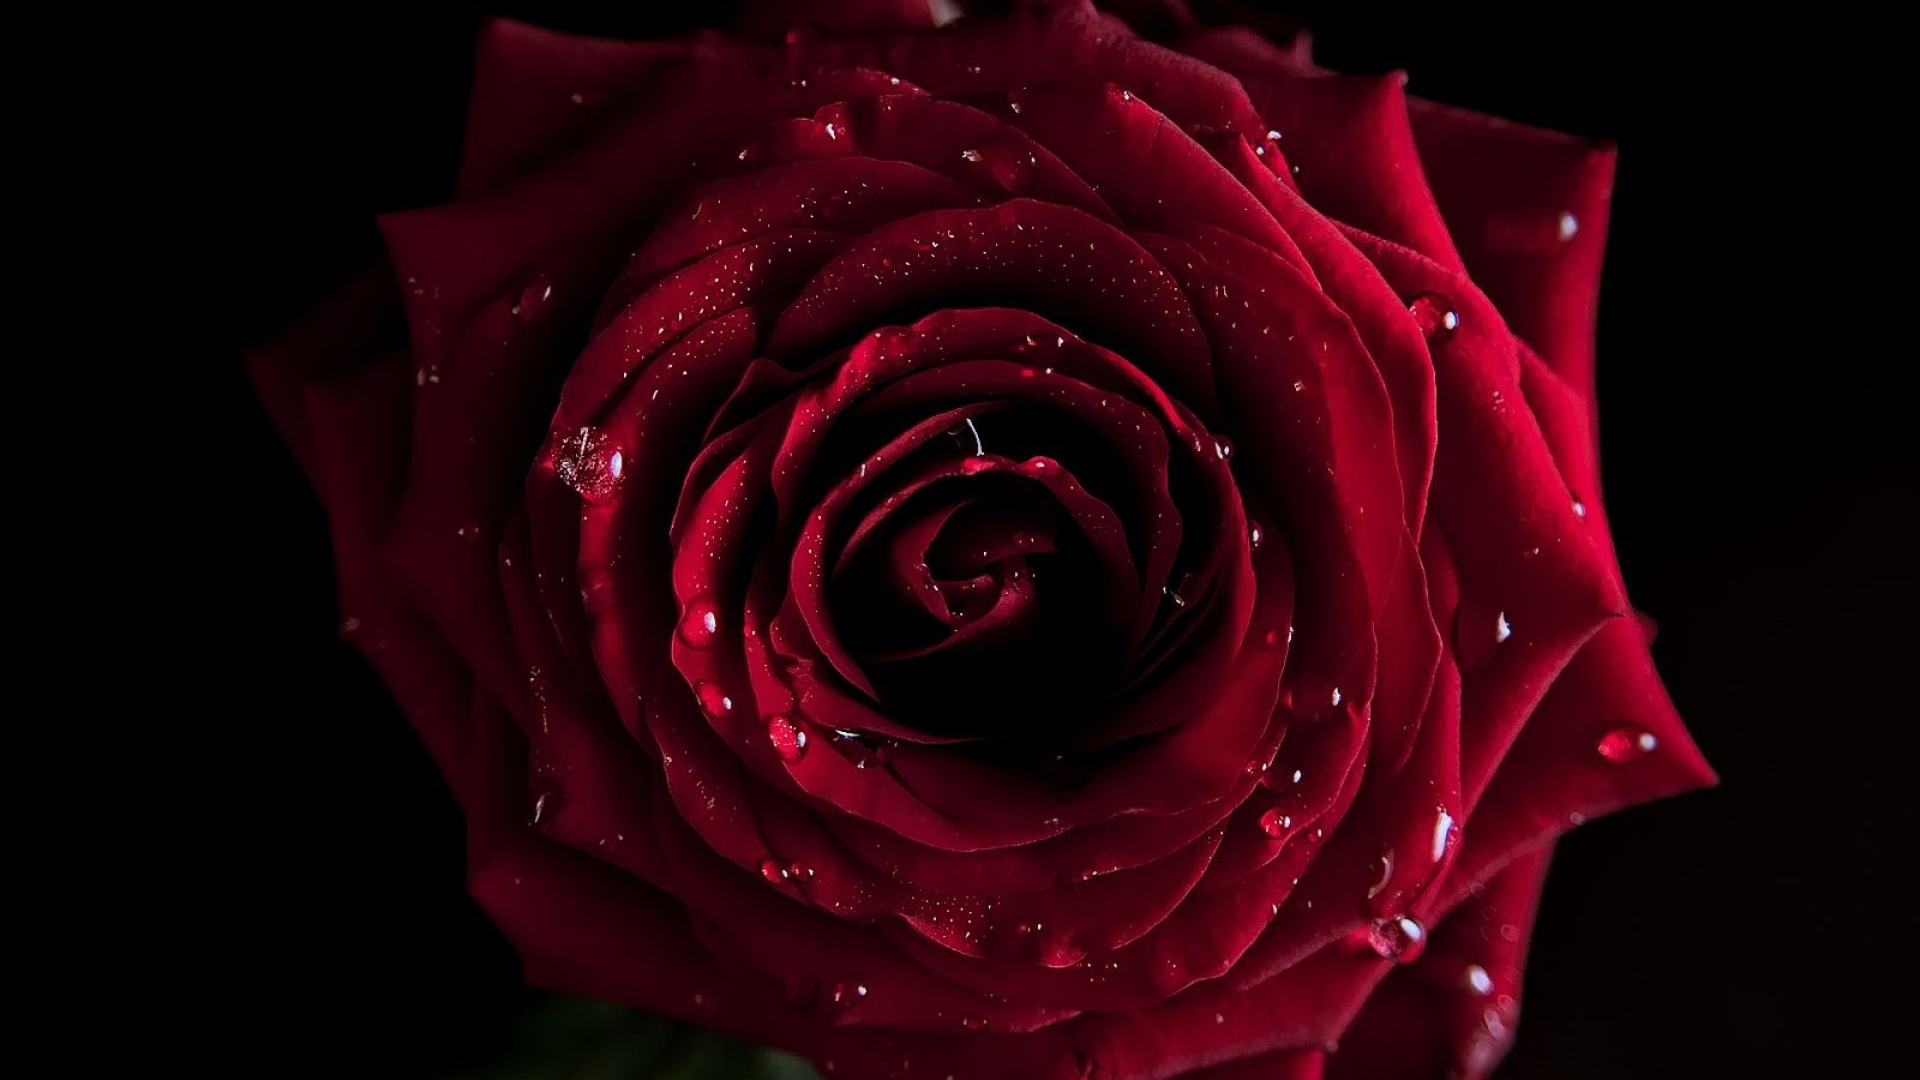 Red rose wallpapers pictures images - Black red rose wallpaper ...